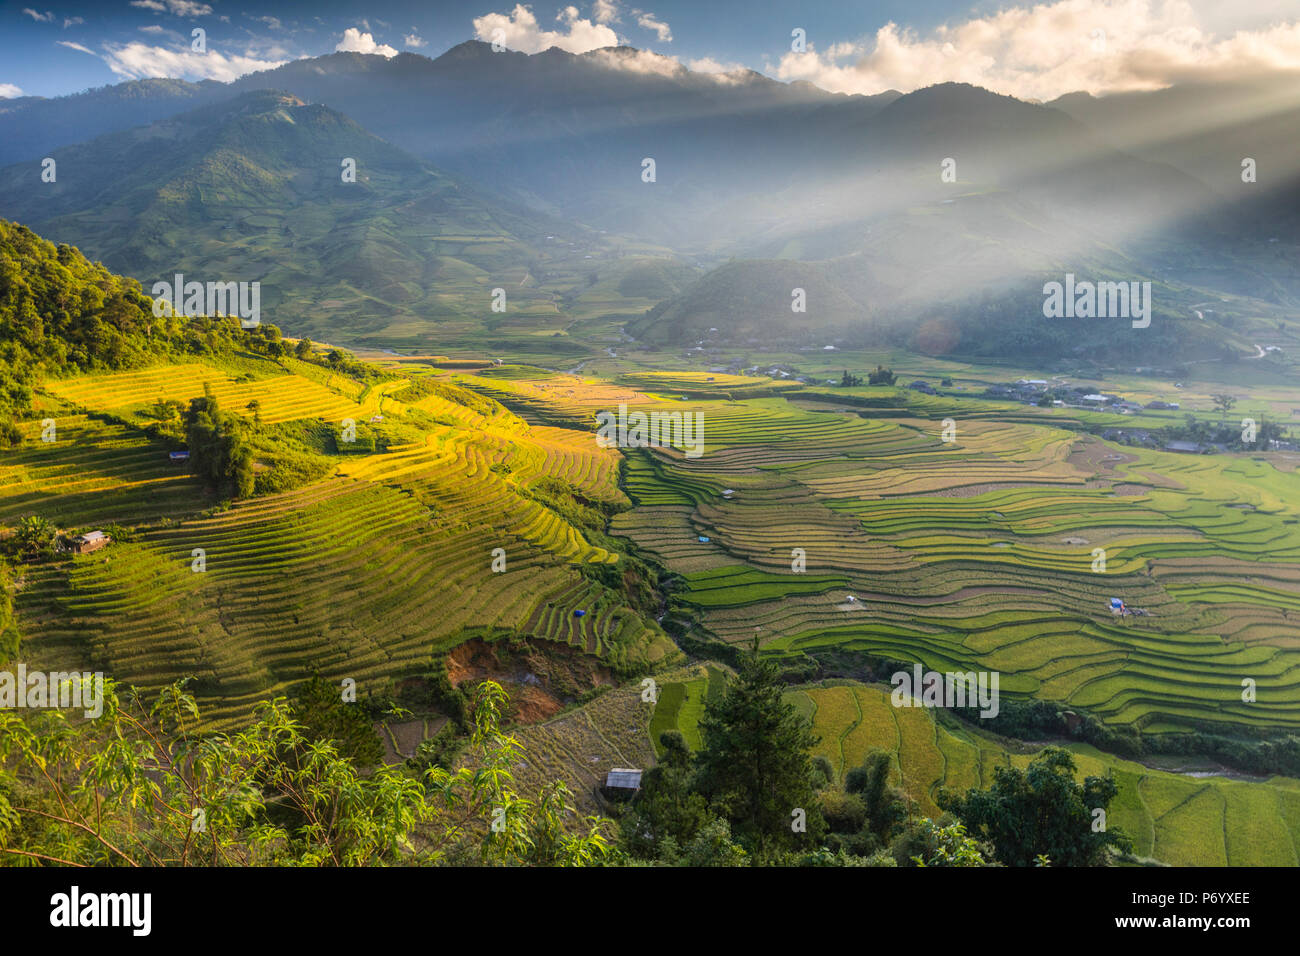 Sun beams over the mountains surrounding the rice terraces at Tu Le, Yen Bai Province, Vietnam, South-East Asia - Stock Image